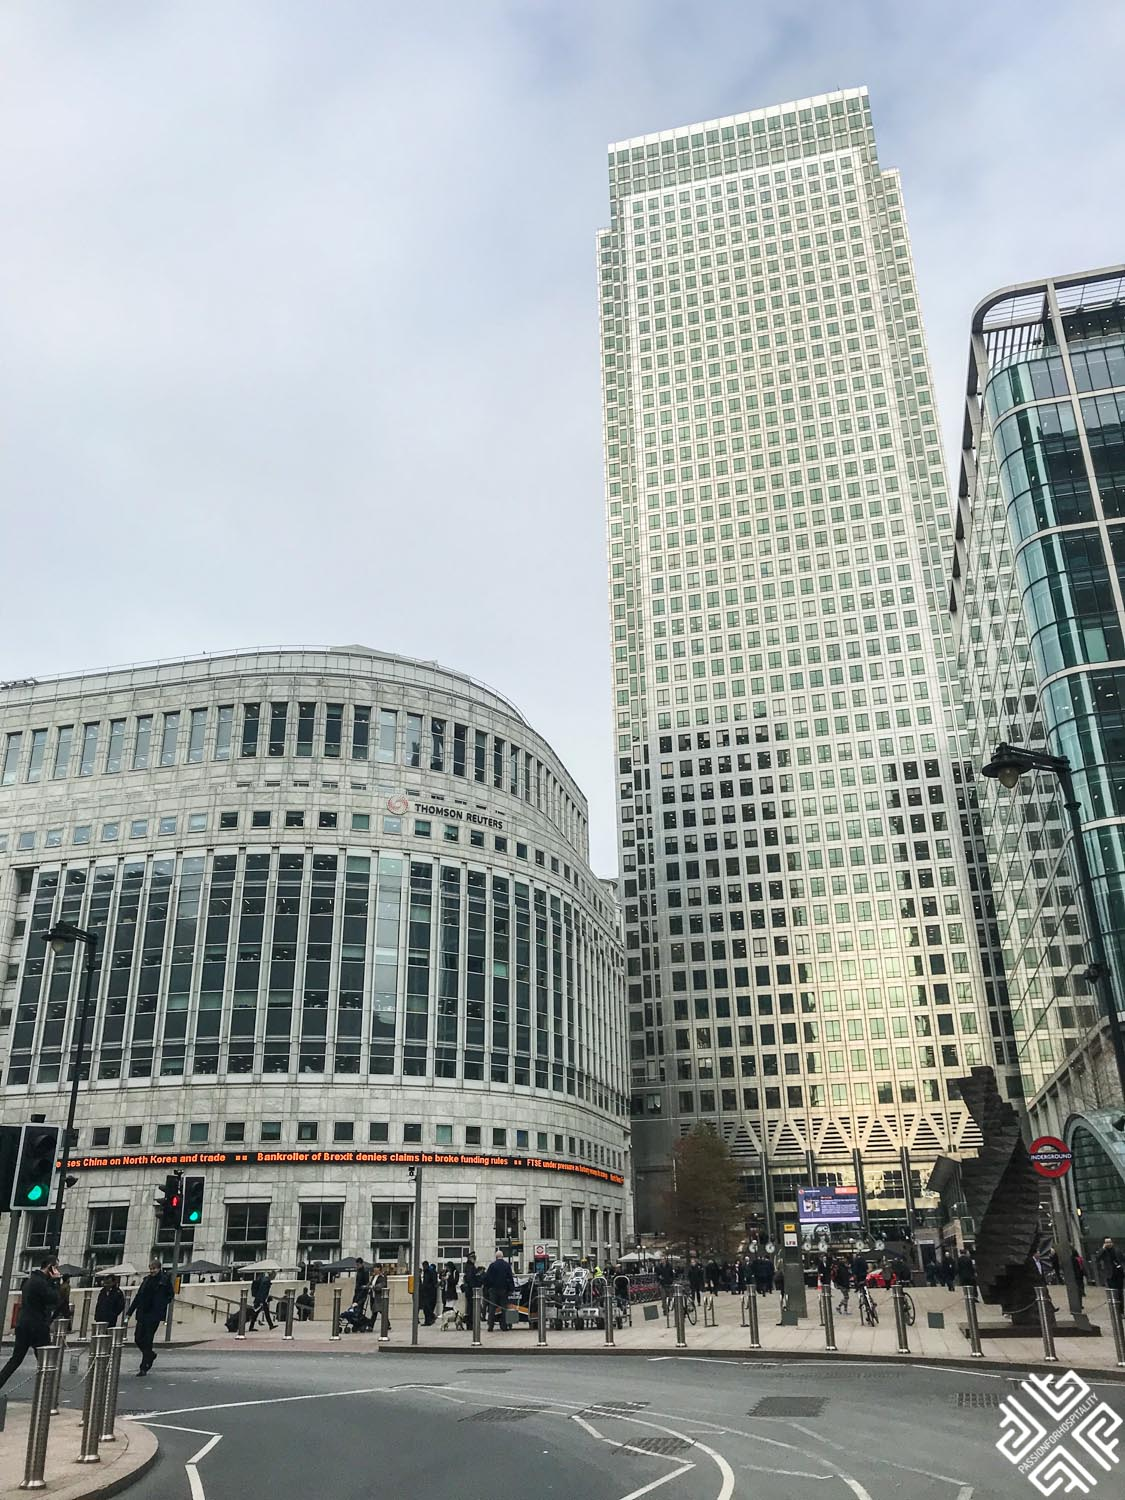 Novotel London Canary Wharf:  A mix of historical and modern